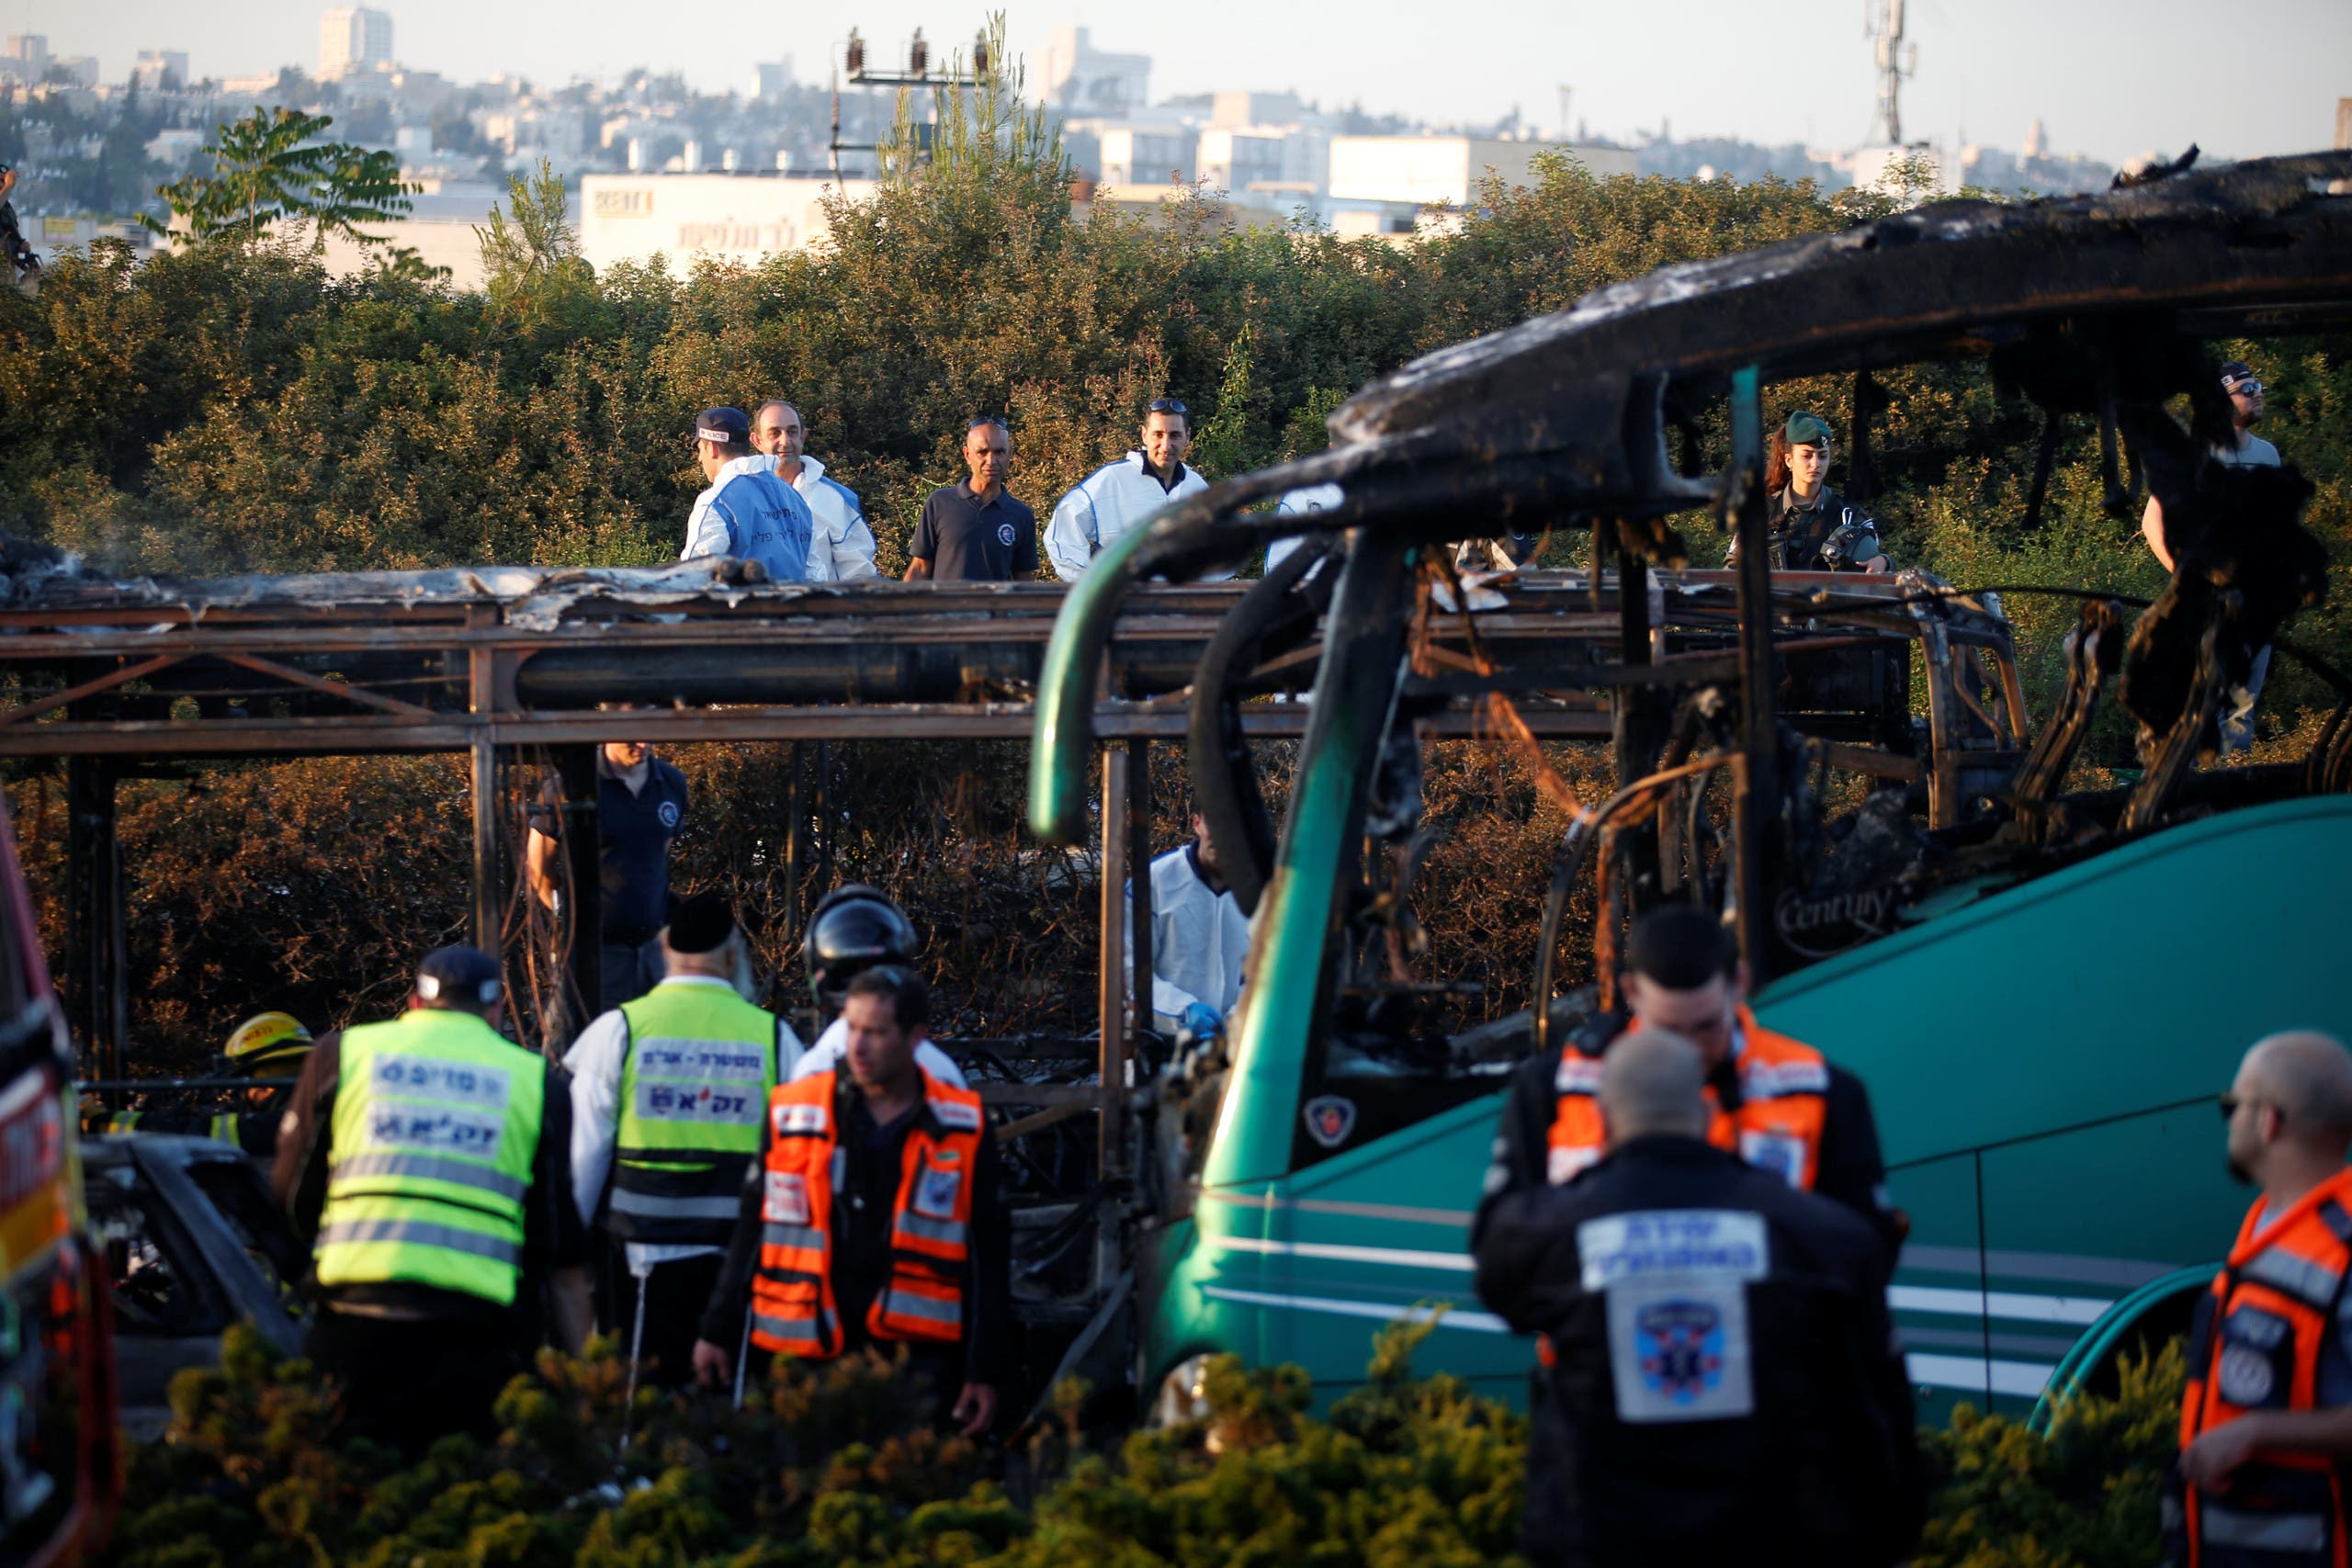 Emergency workers search the scene after a blast on a bus in Jerusalem April 18, 2016. REUTERS